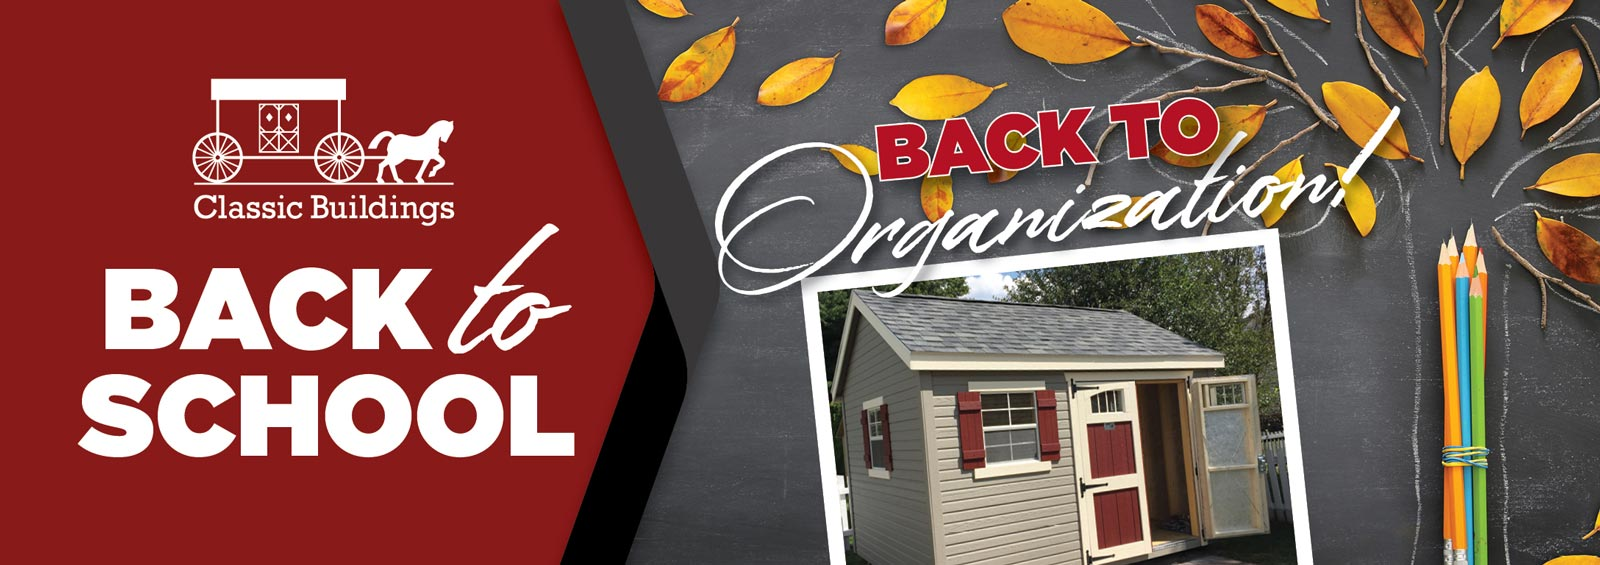 Classic Buildings Spring Cleaning 2021 promo banner